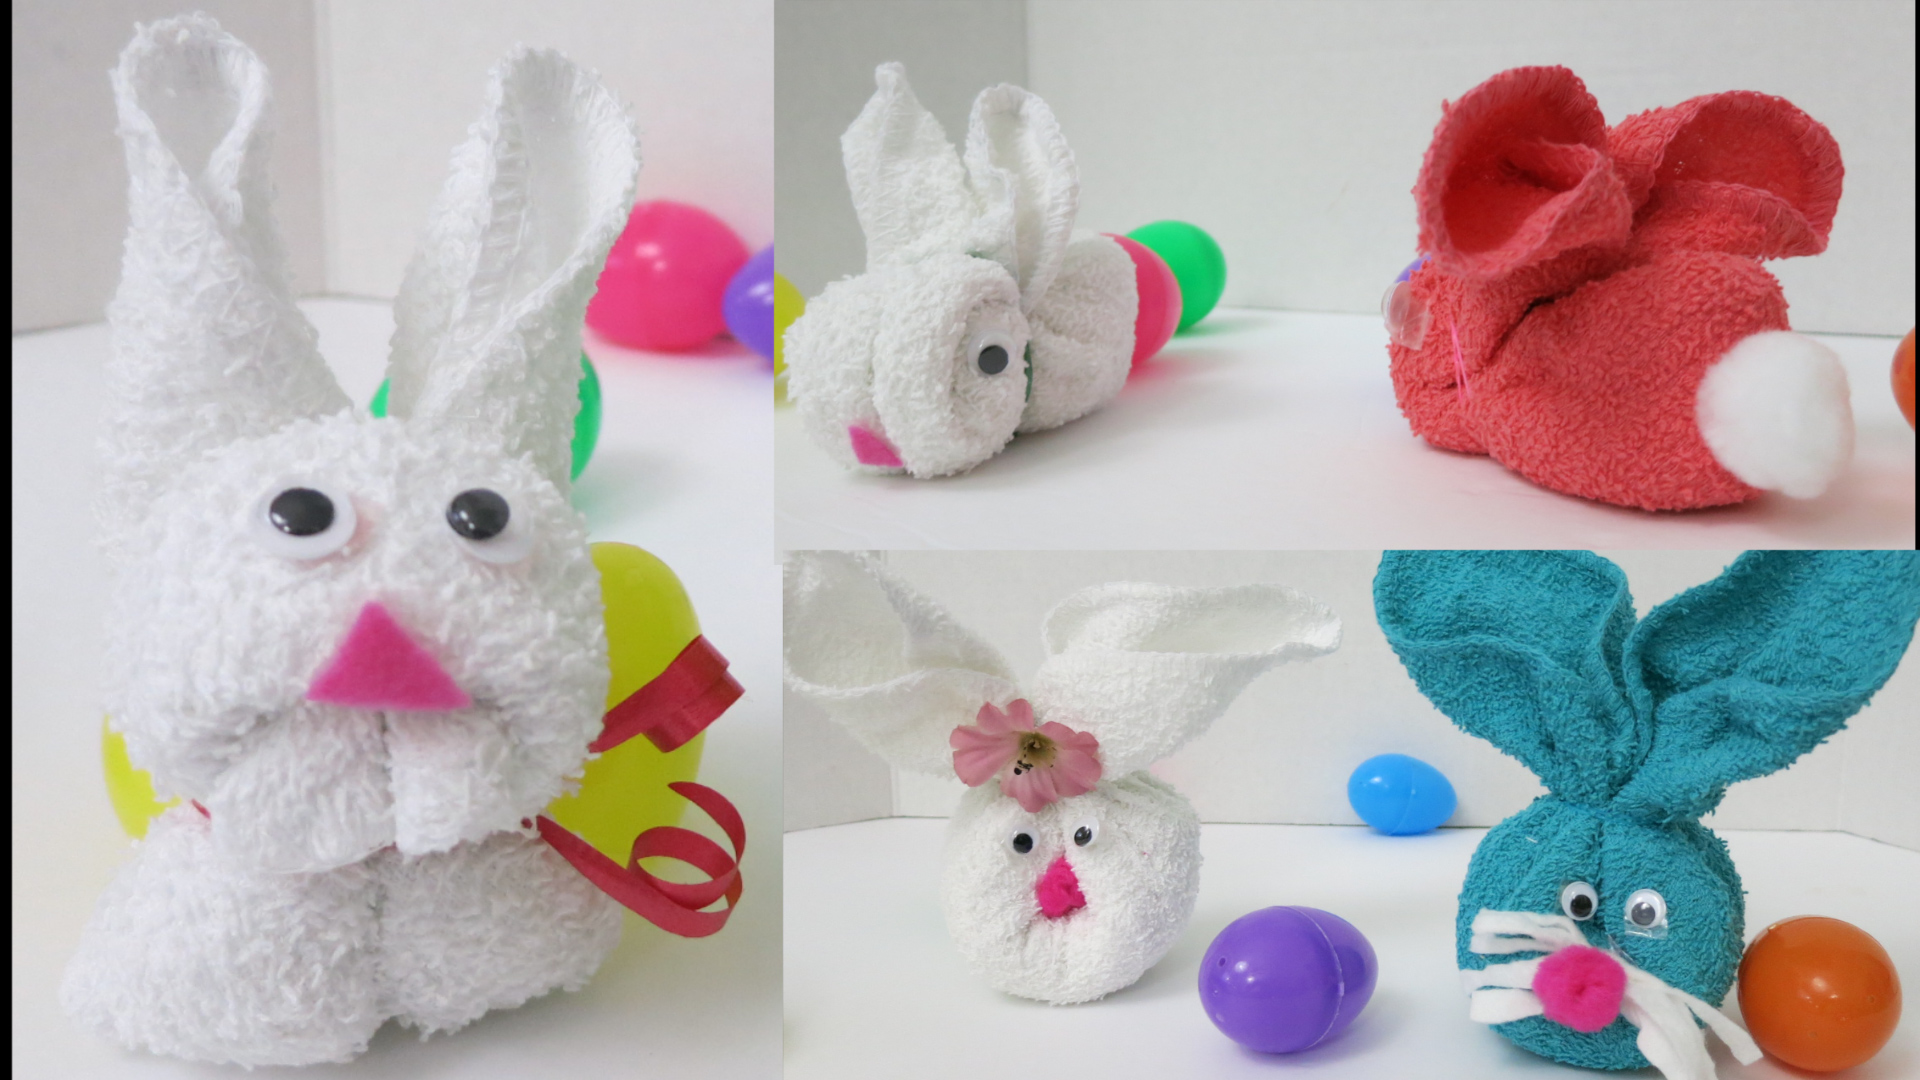 How to fold a Towel into an Easter Bunny Rabbit Animal Towel Origami.jpg